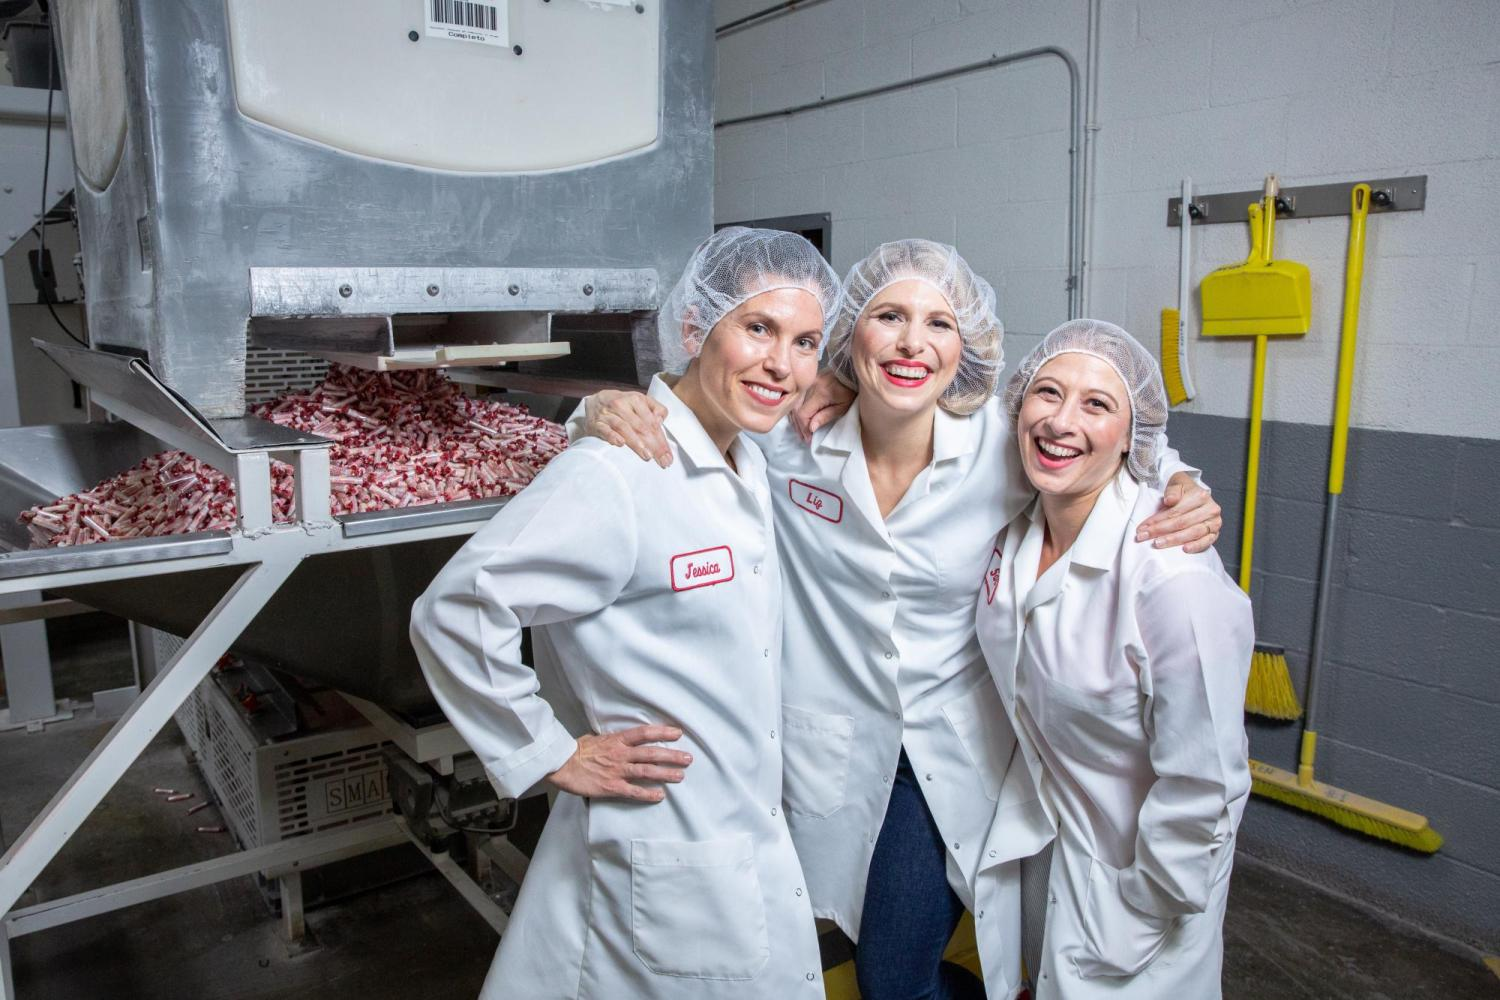 the three women co-presidents of the smarties candy company pose in the factory with hairnets